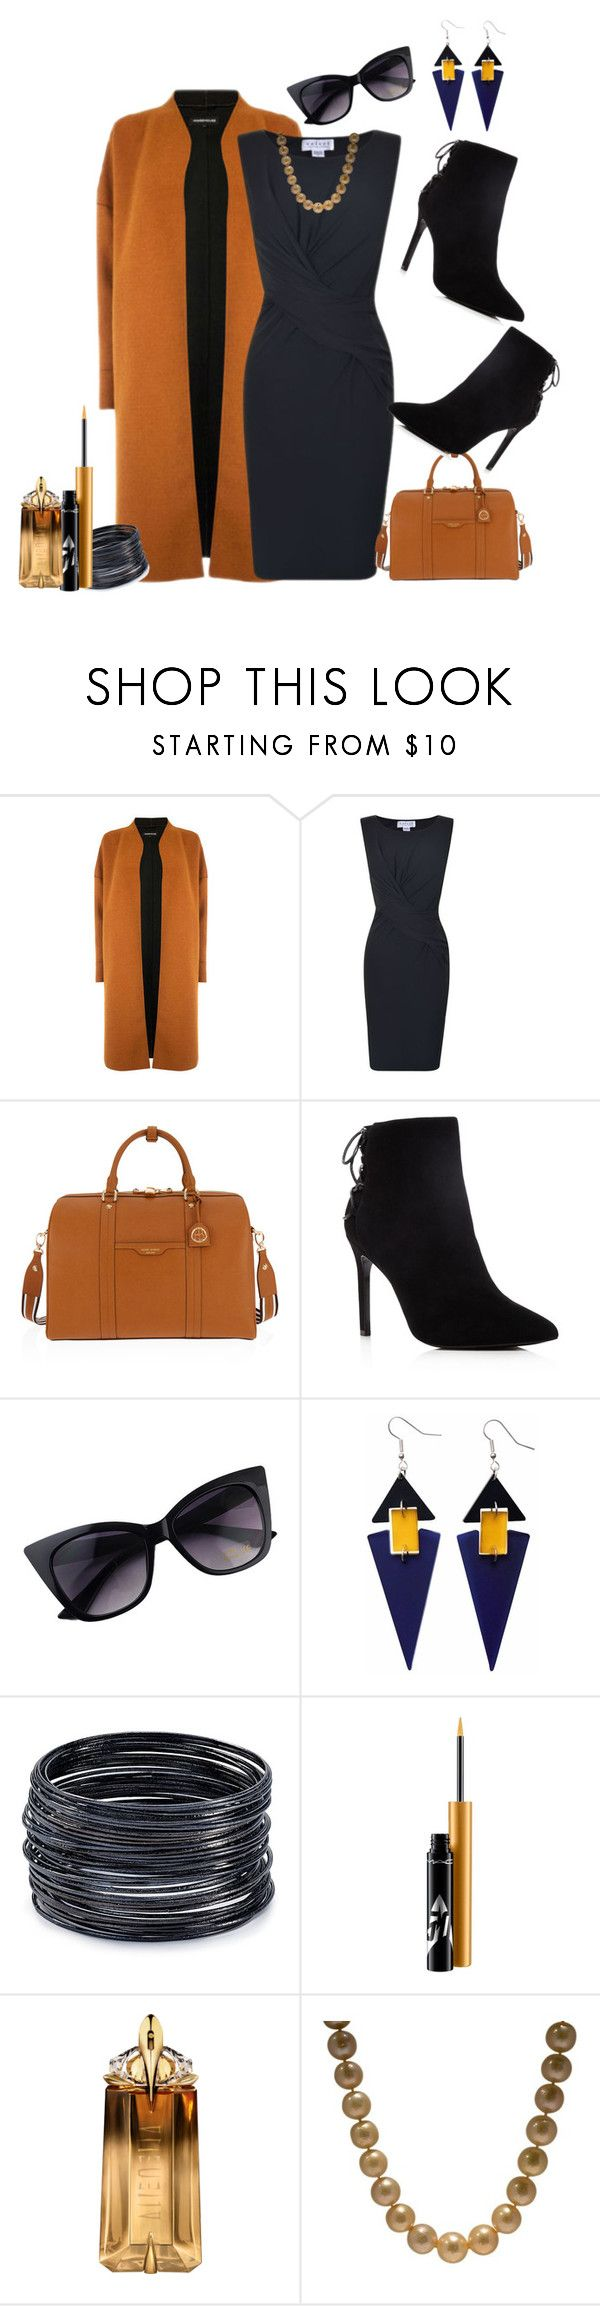 """Velvet dress!"" by schneerose ❤ liked on Polyvore featuring Warehouse, Velvet, Henri Bendel, Charles David, Toolally, ABS by Allen Schwartz, MAC Cosmetics and Thierry Mugler"